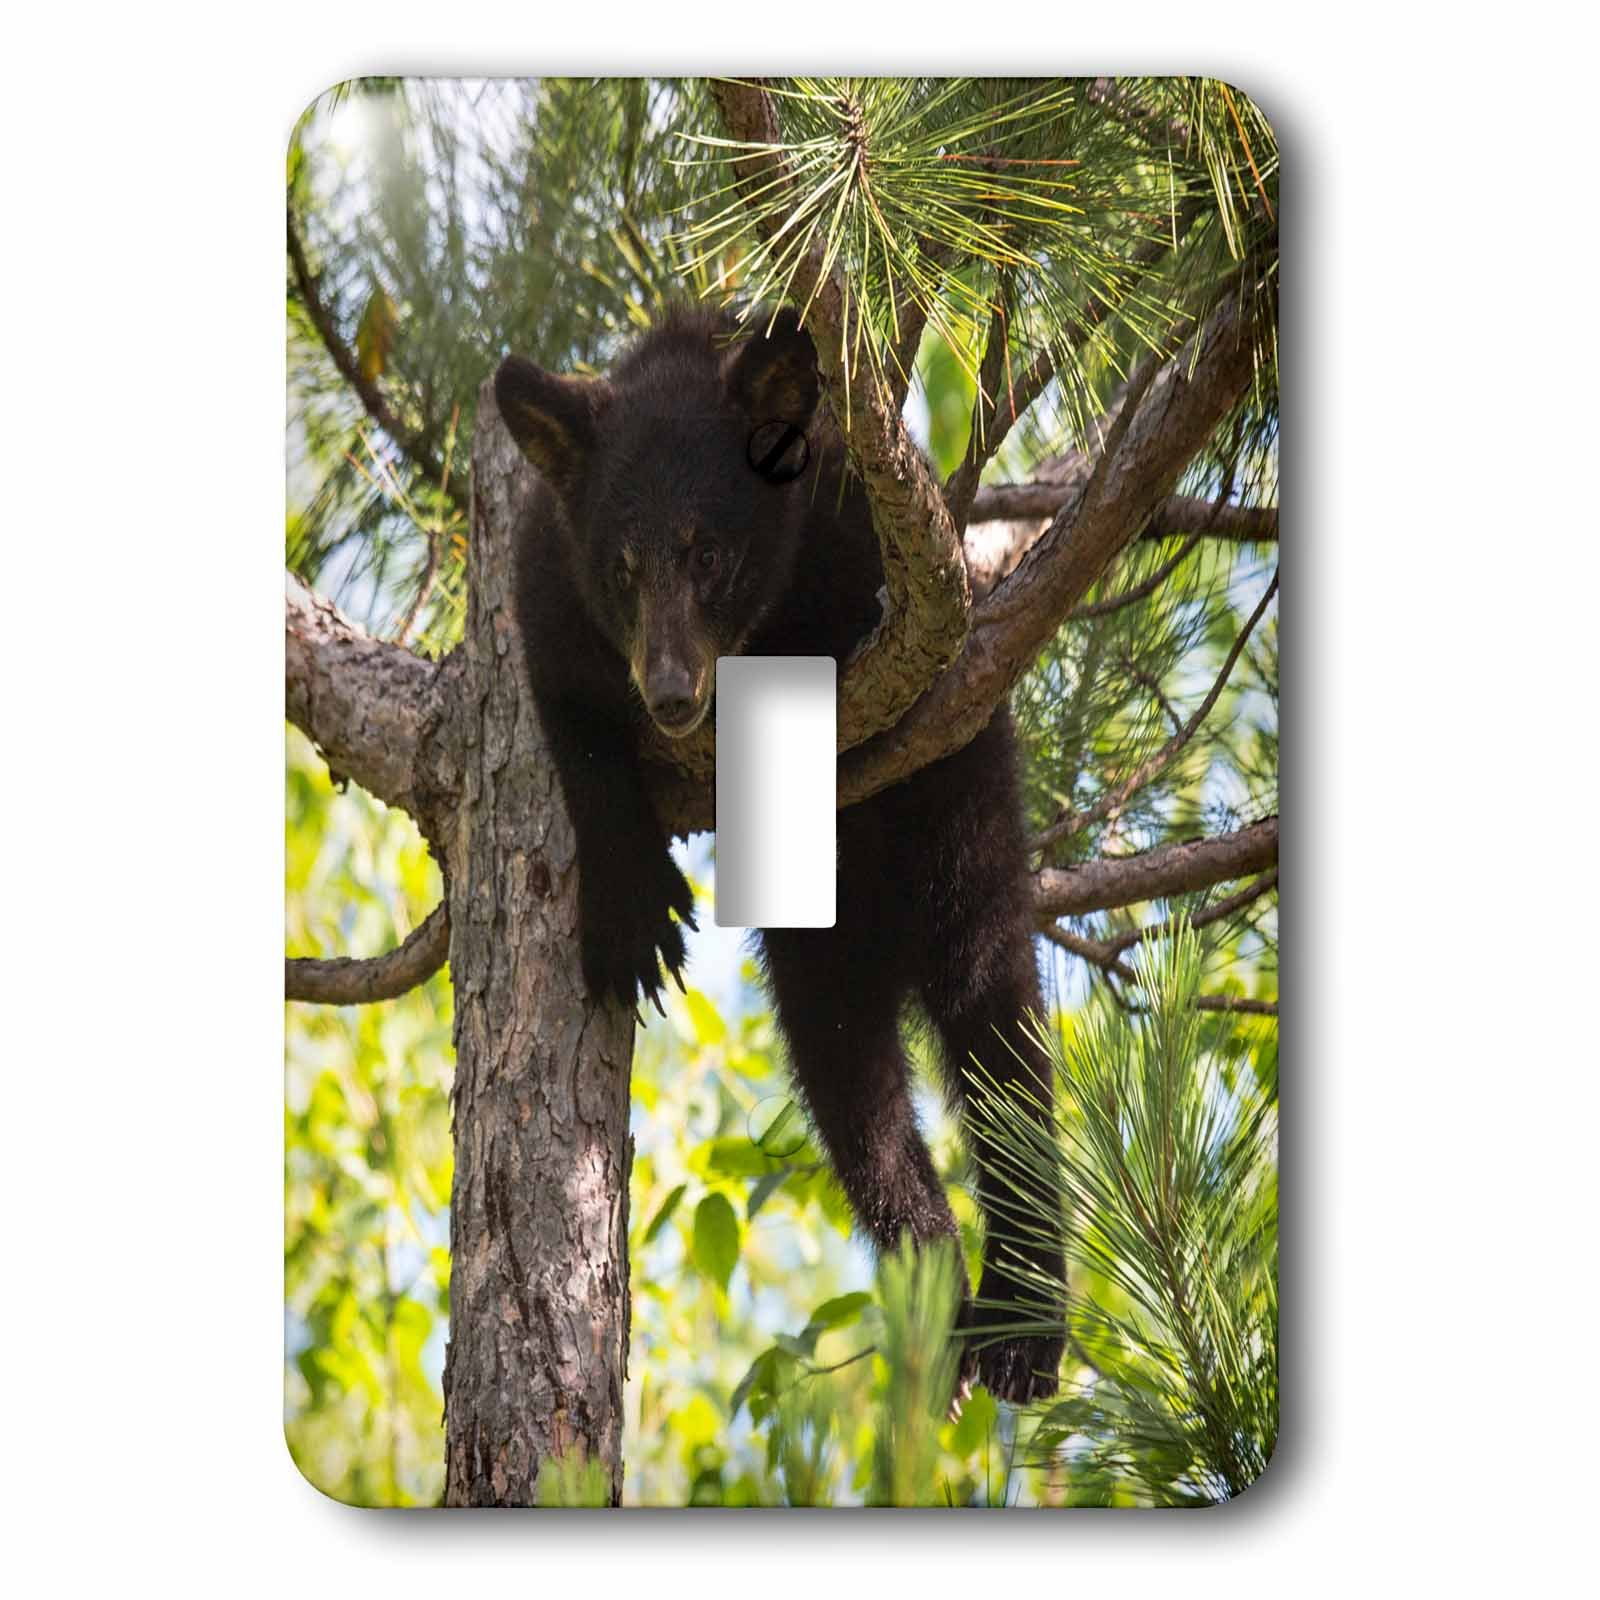 3dRose Danita Delimont - Baby animals - USA, Minnesota, Sandstone, Black Bear Cub Stuck in a Tree - Light Switch Covers - single toggle switch (lsp_279128_1)